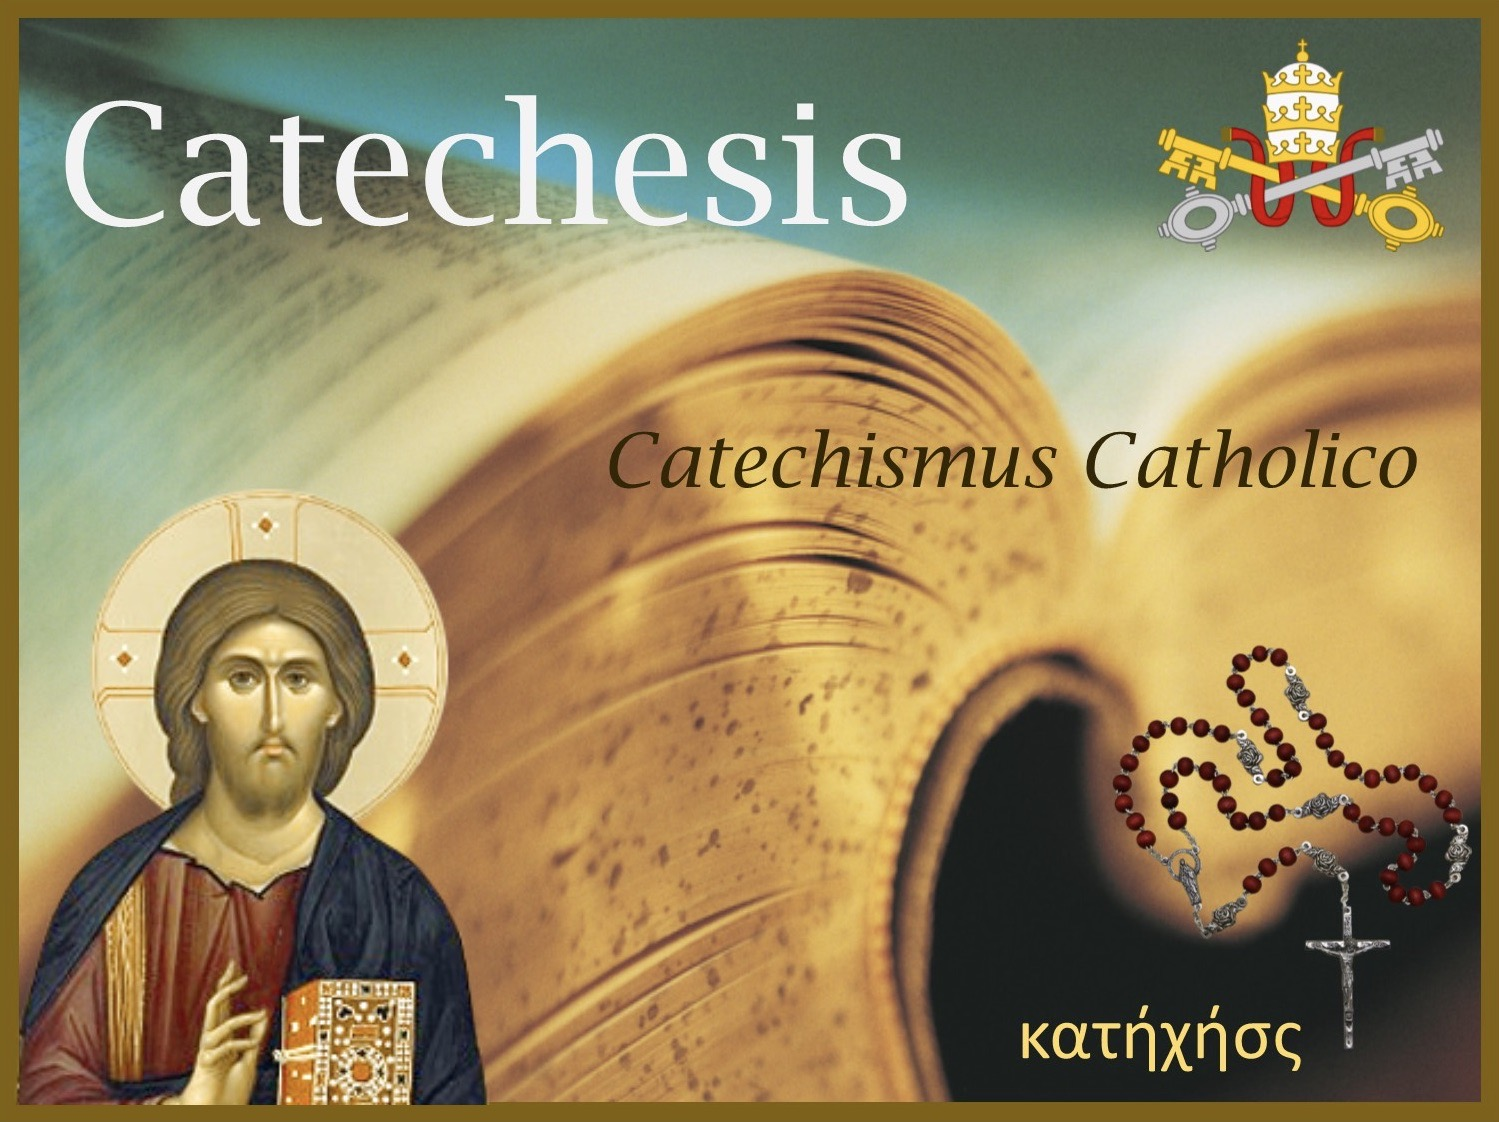 Catechesis4 image